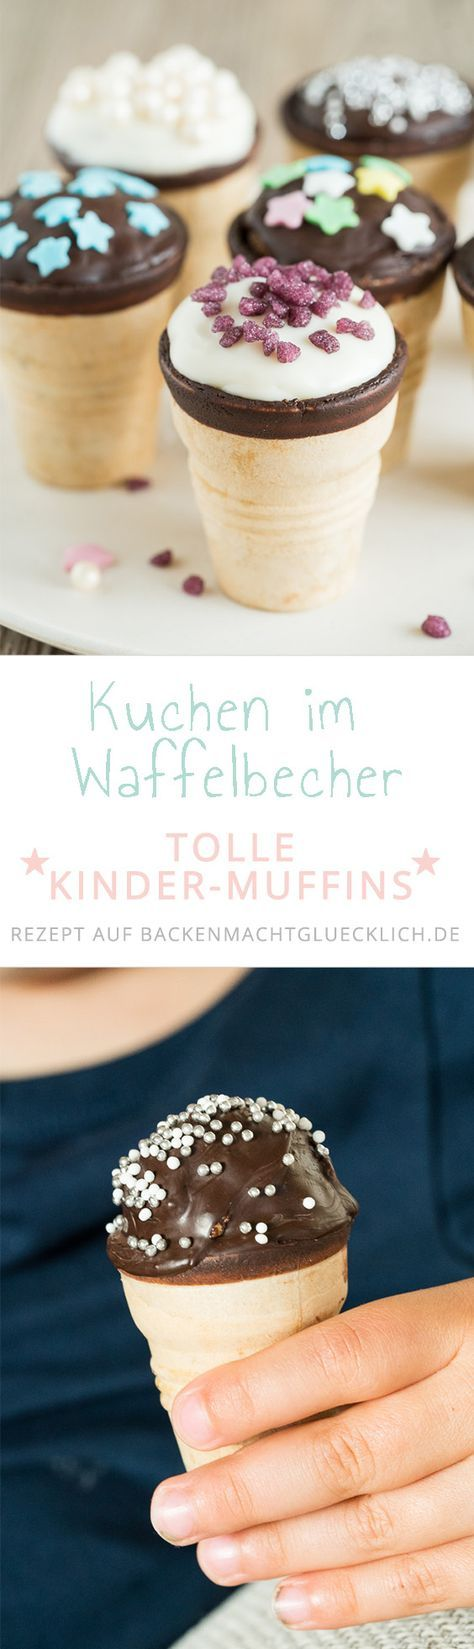 kleine kuchen in der waffel rezept kuchen torten cupcake pinterest kuchen backen und. Black Bedroom Furniture Sets. Home Design Ideas